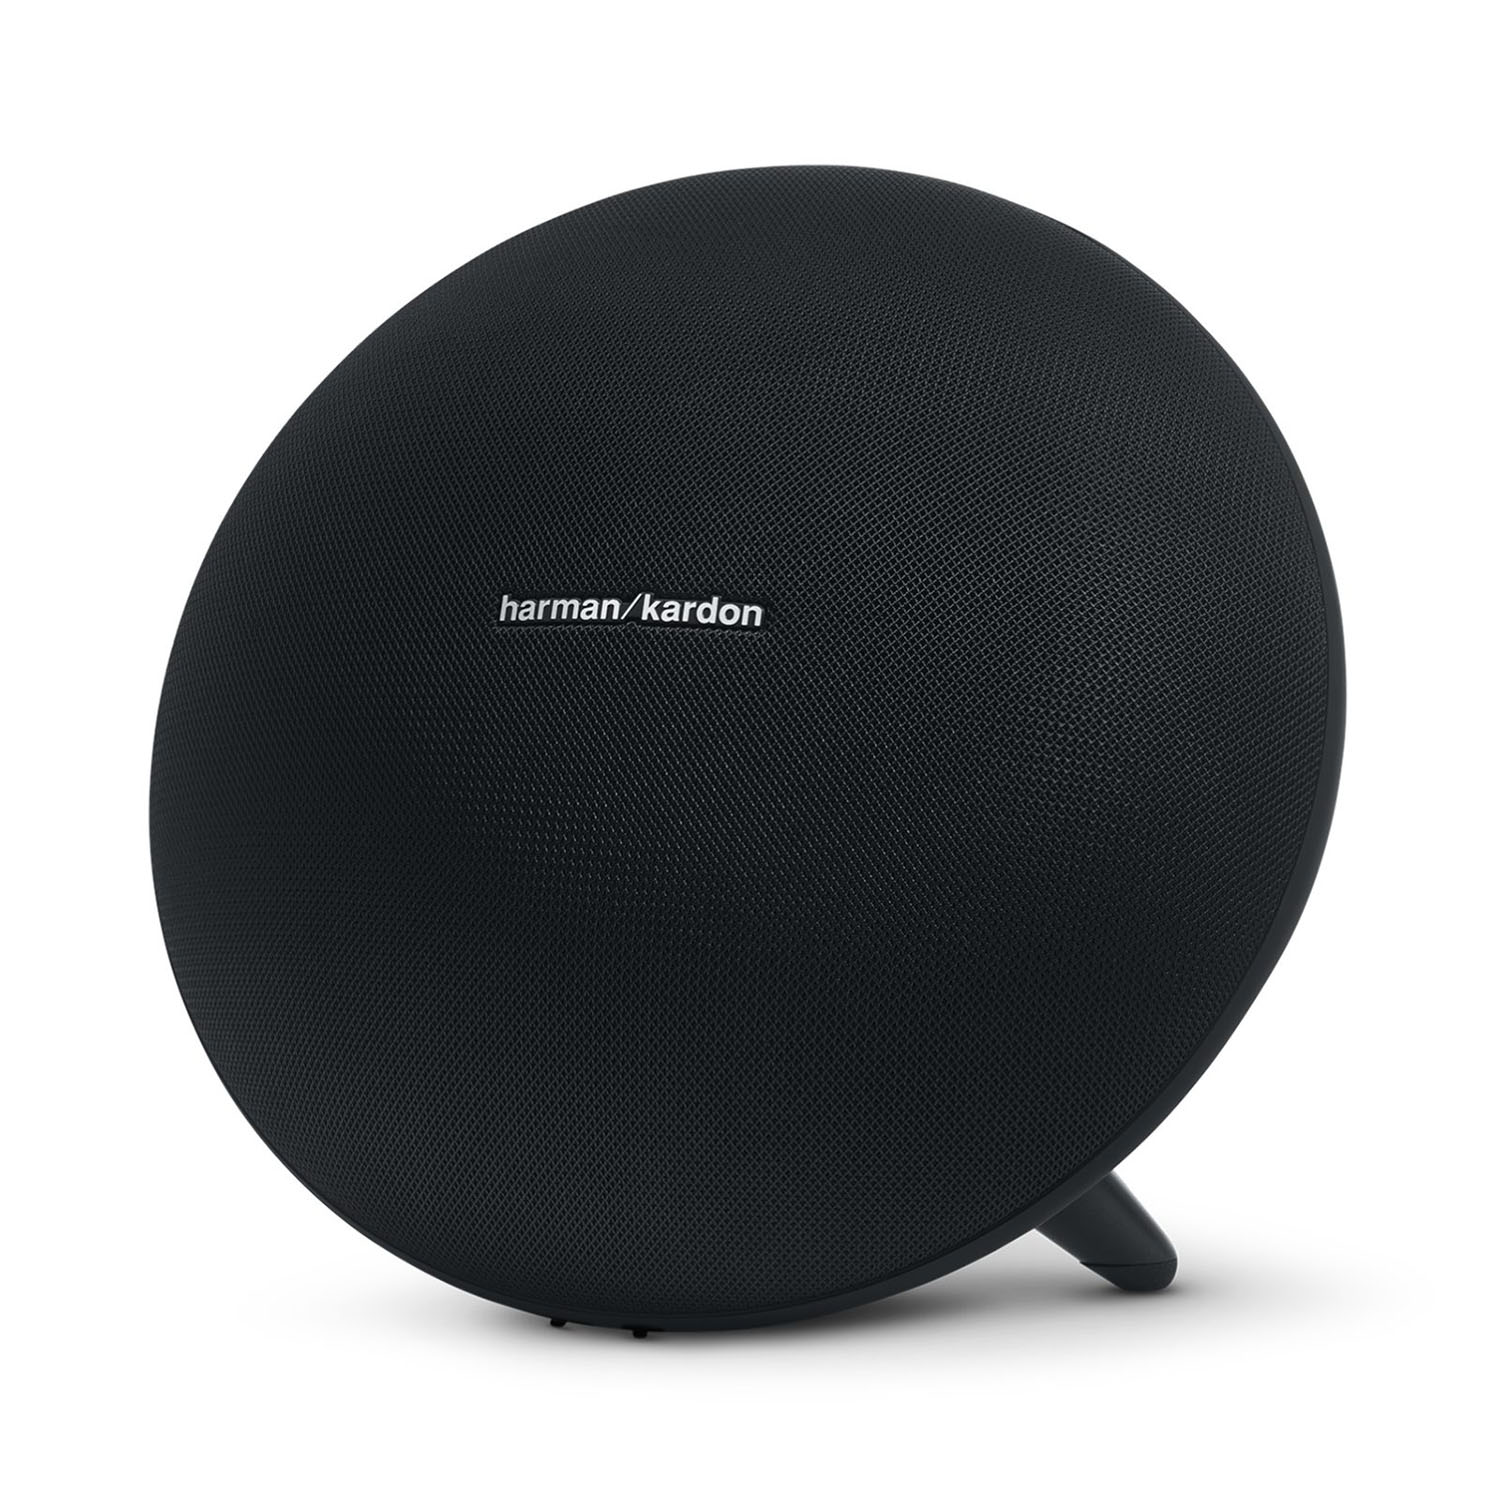 Harman Kardon Onyx Studio 3 Portable Bluetooth Speaker with Rechargeable Battery Black by Harman Kardon